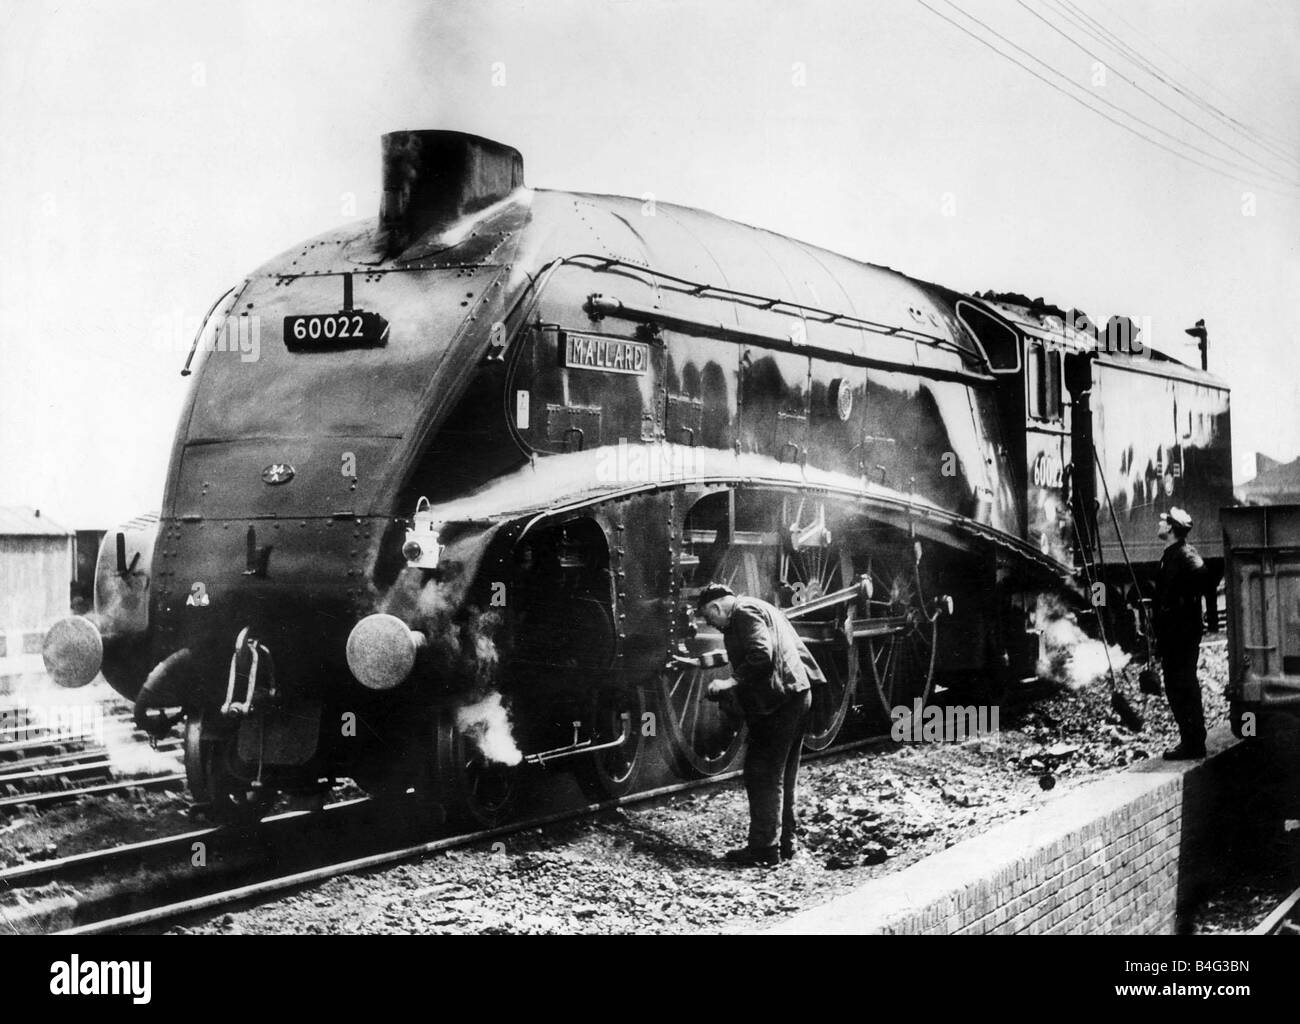 The Mallard steam train world record holder for steam locomotives at 126 mph in 1938 seen here in March 1965 - Stock Image